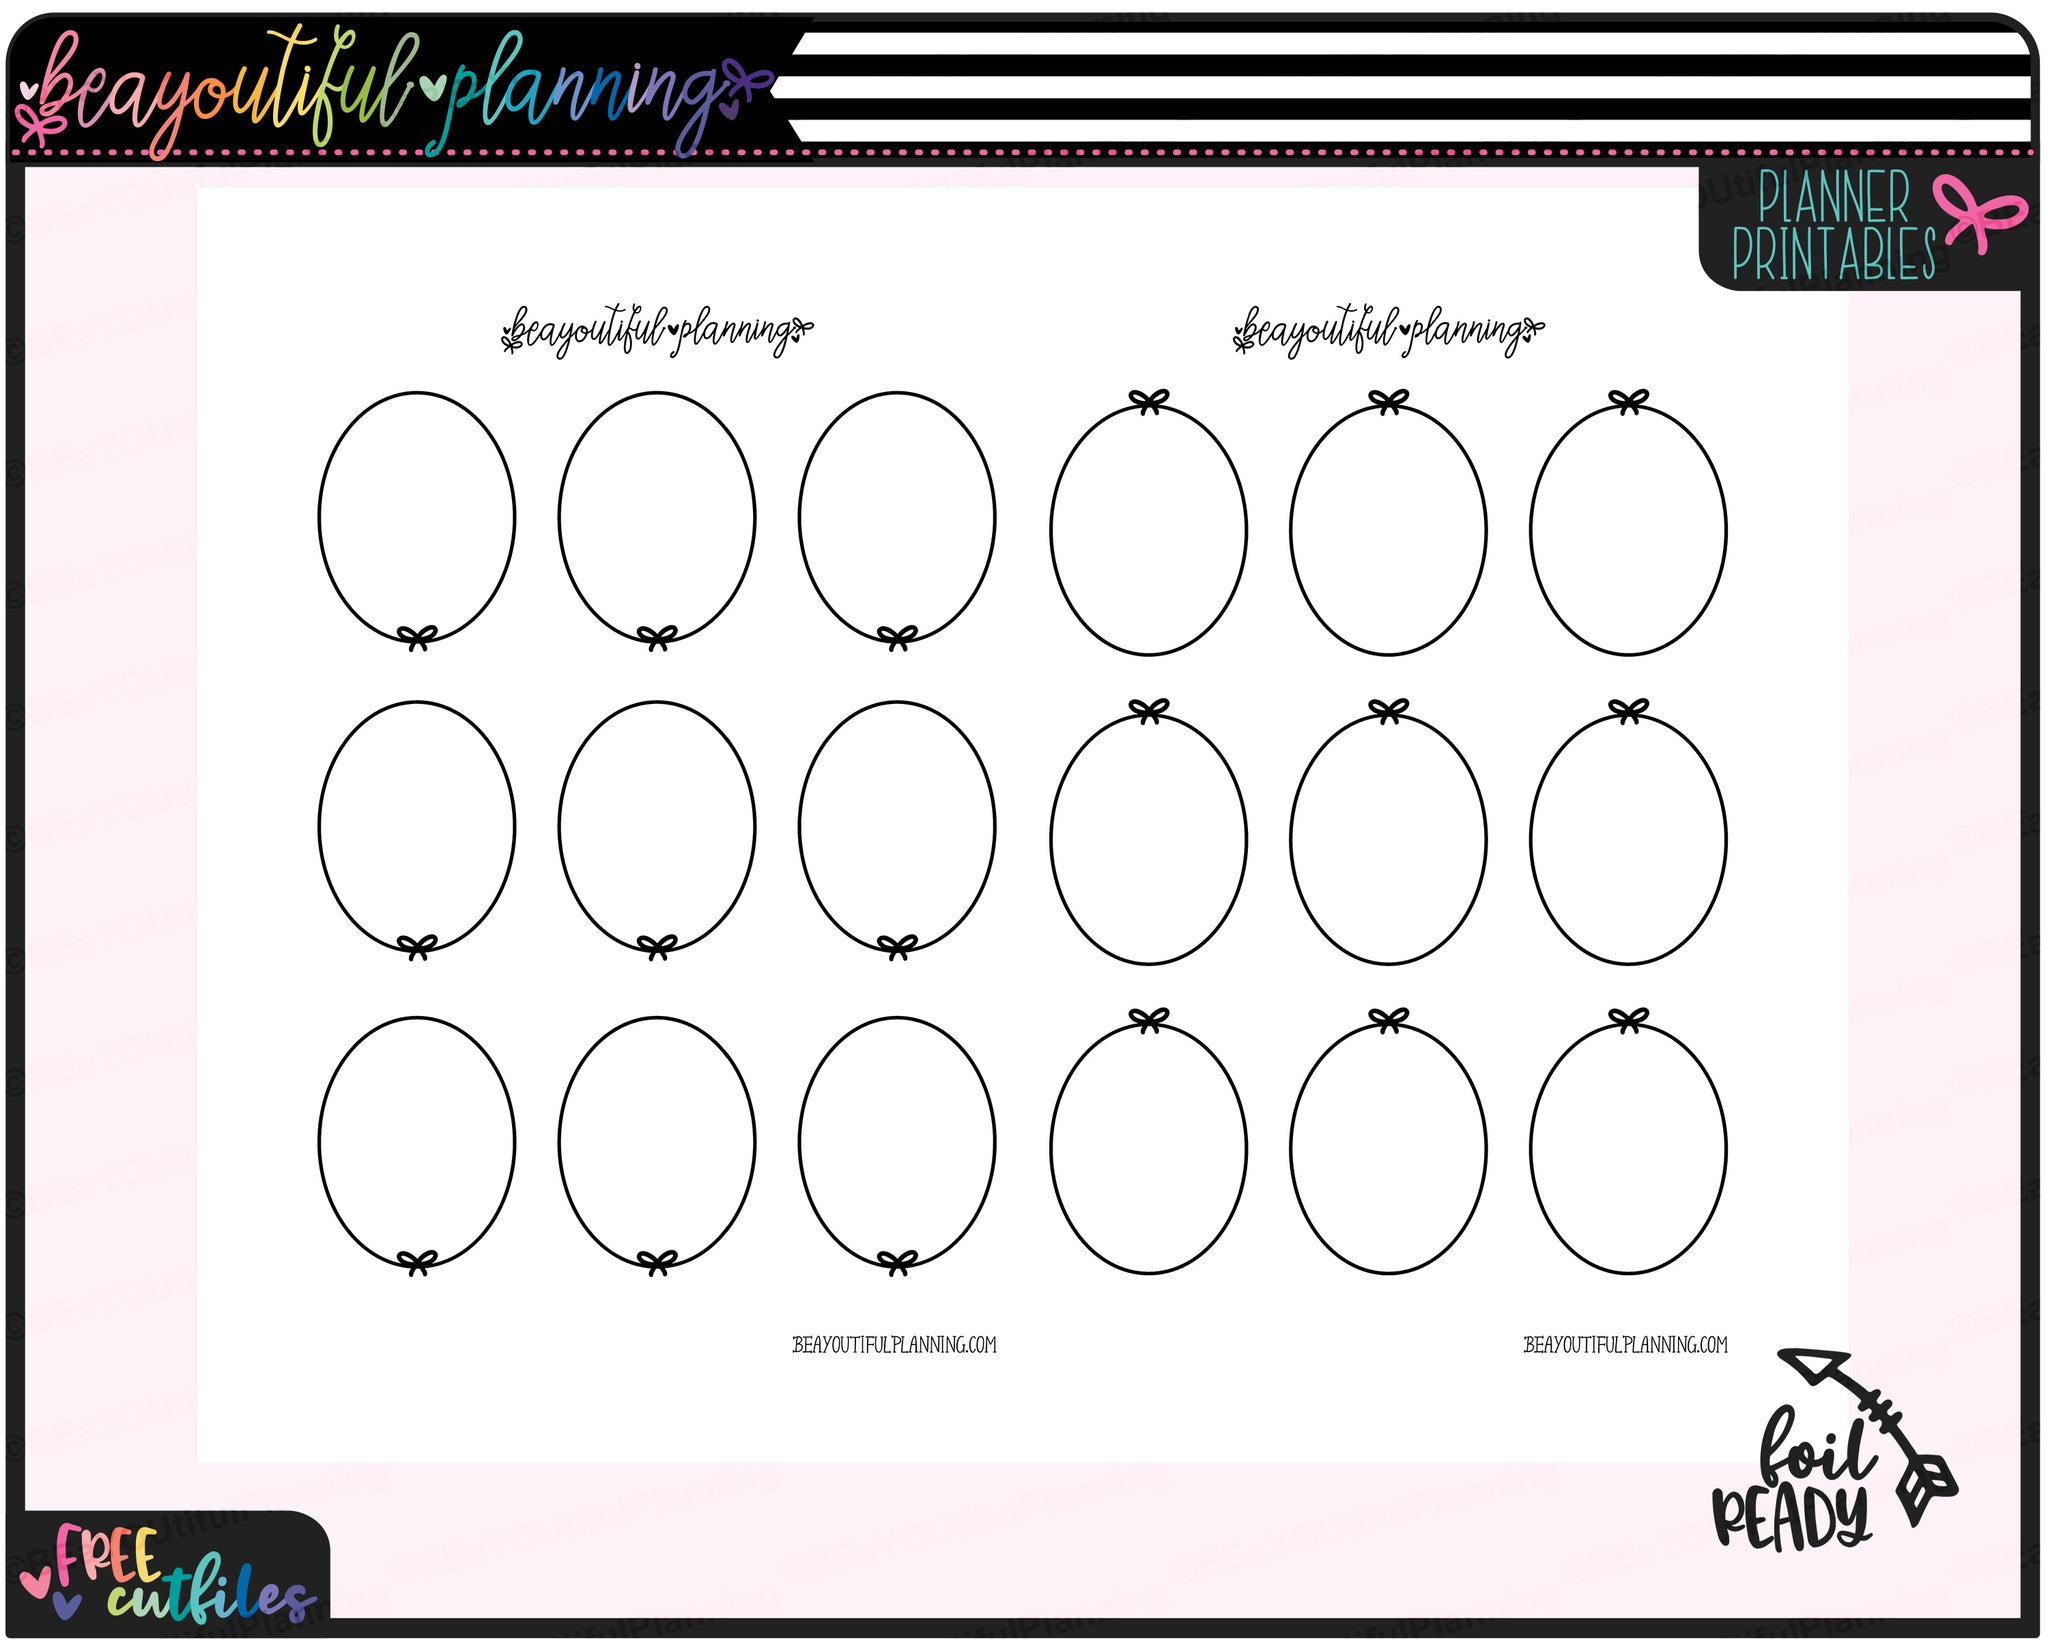 Oval Bows Foil Ready Overlay Printable